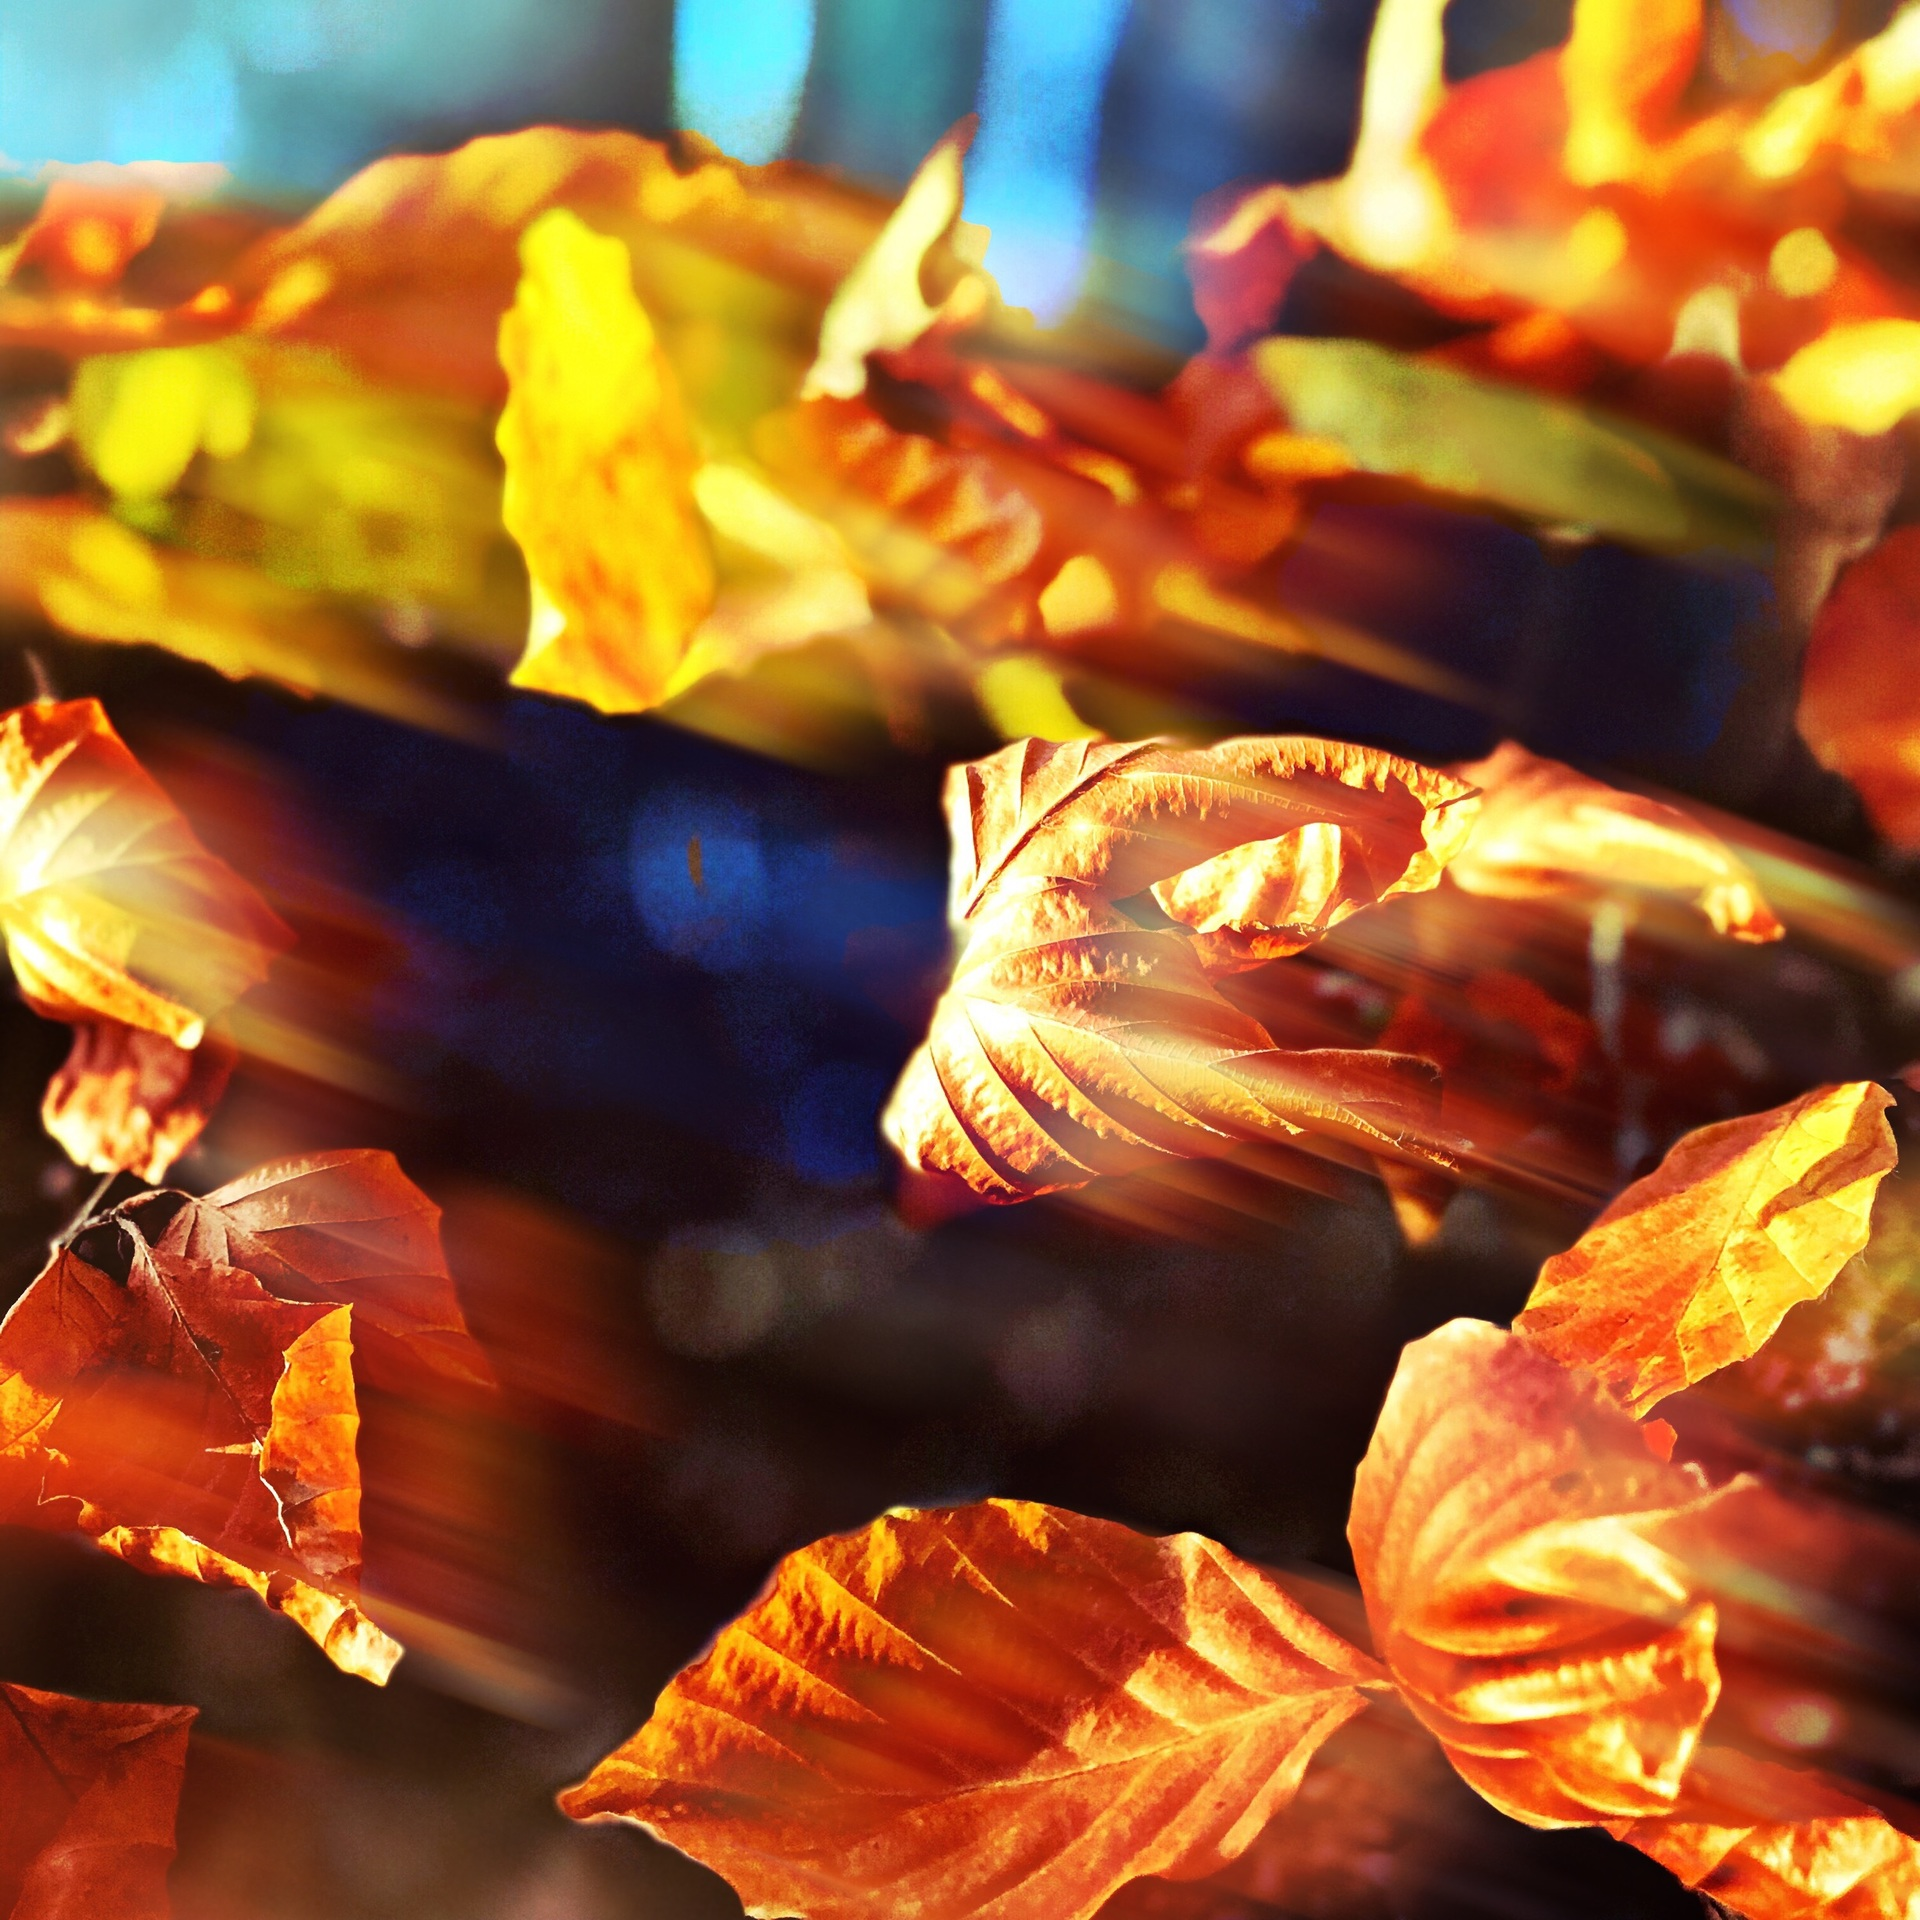 Autumnal leaves | mezmic, no person, fall, bright